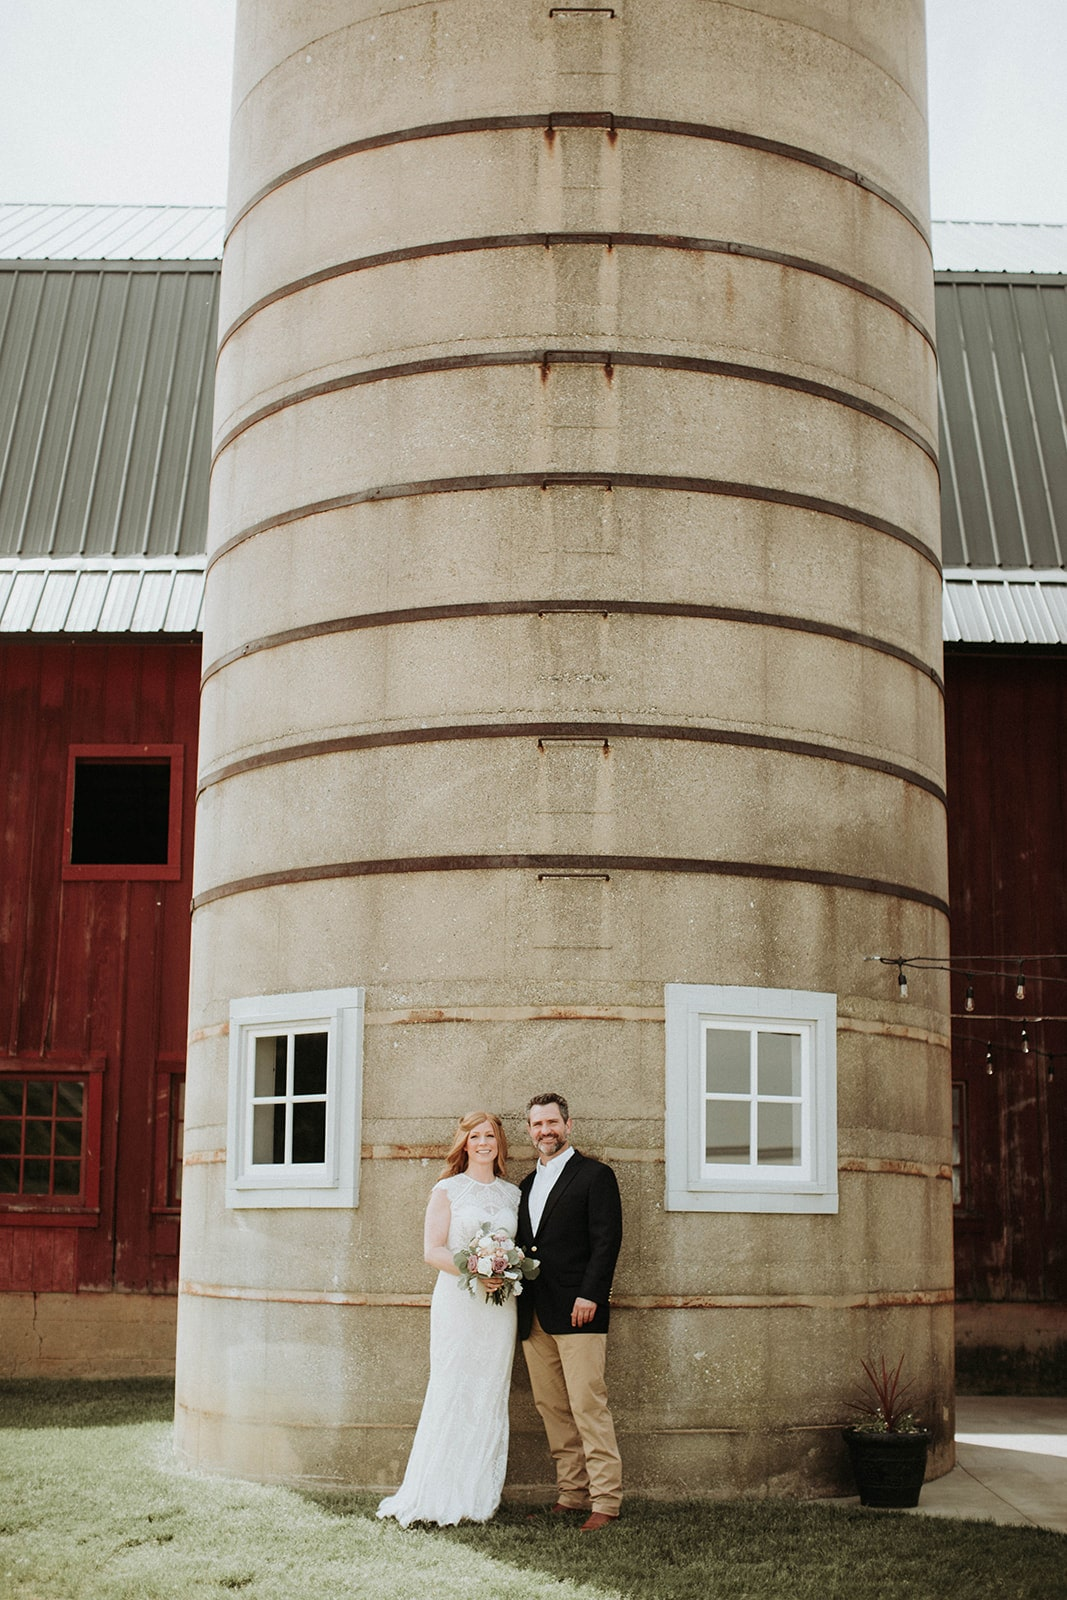 bride-and-groom-pose-by-barn-silo-min.jpg